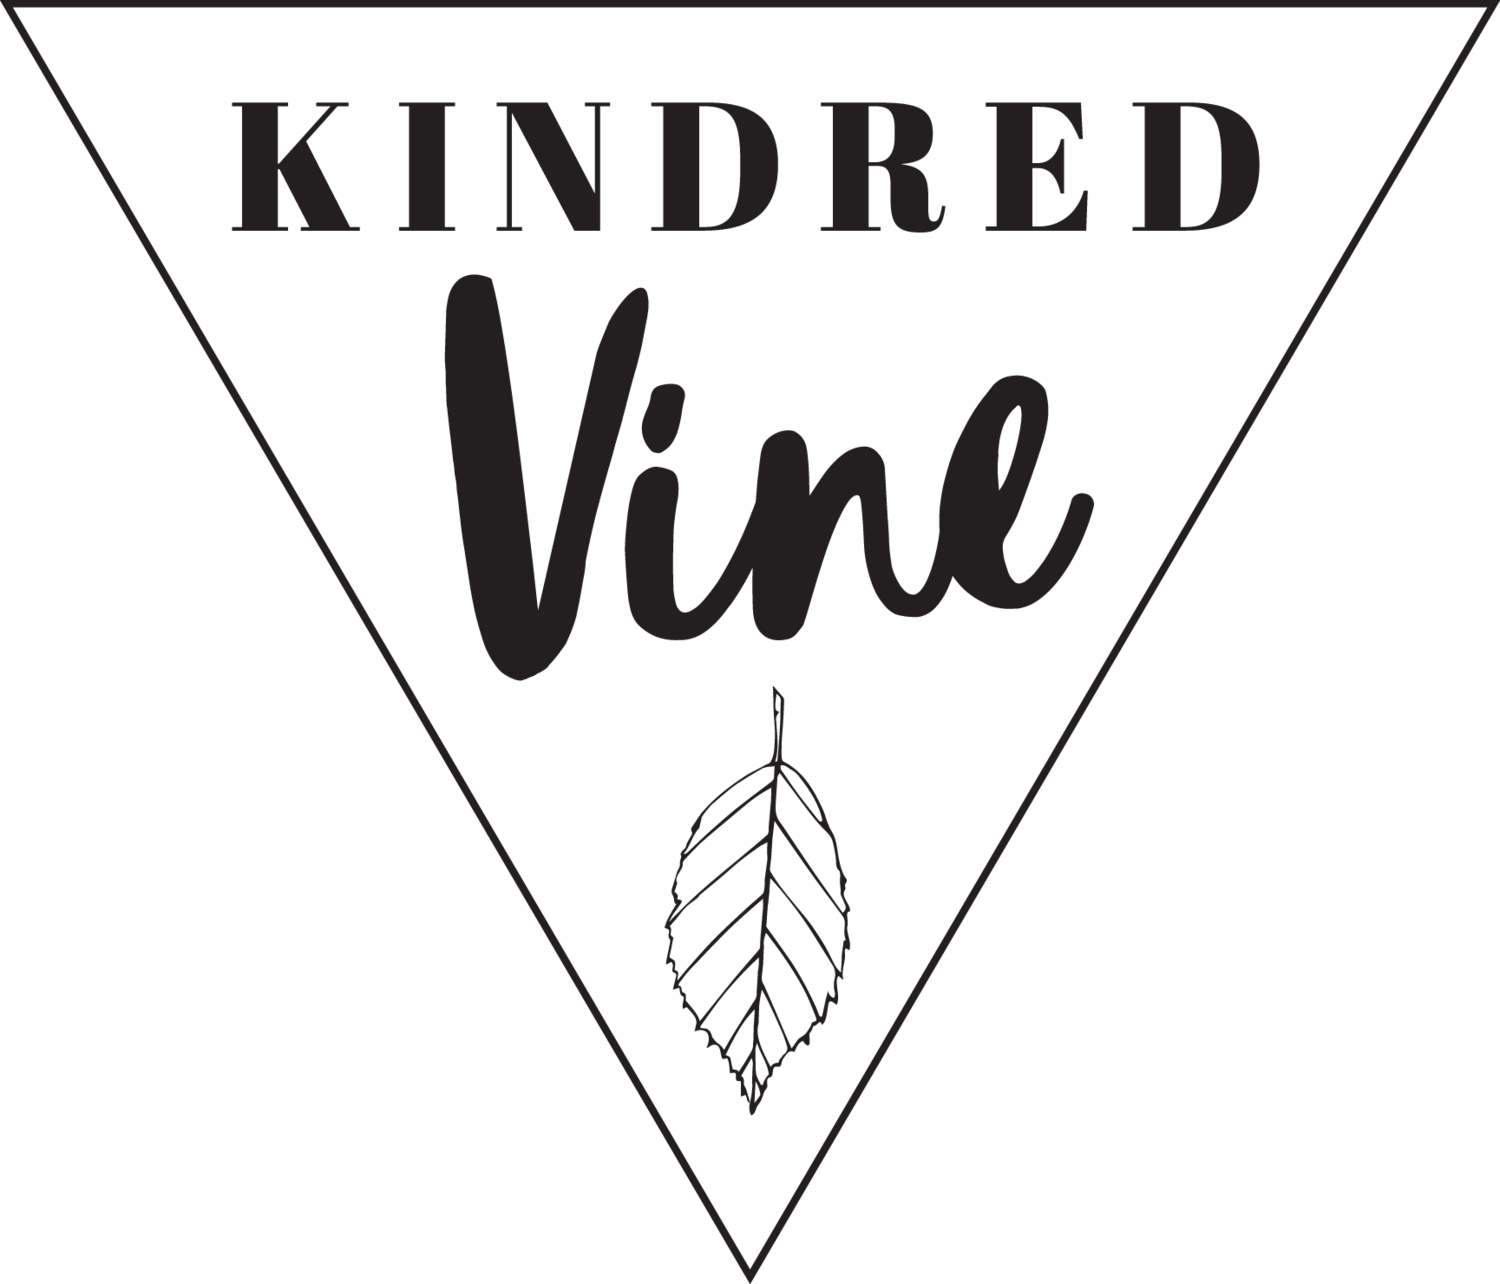 Kindred Vine